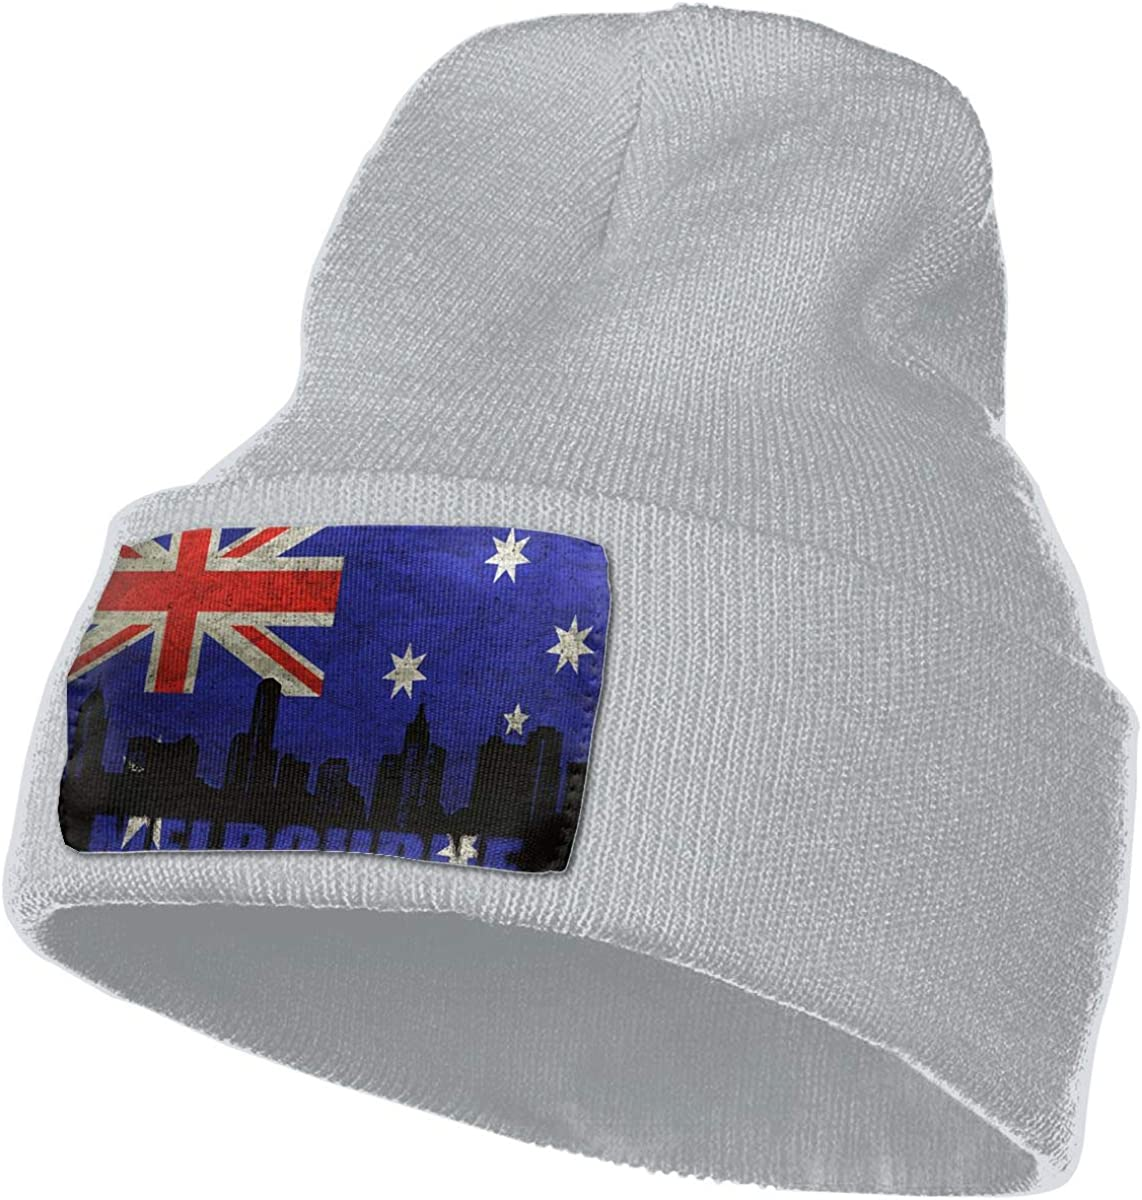 JimHappy Melbourne Architecture Hat for Men and Women Winter Warm Hats Knit Slouchy Thick Skull Cap